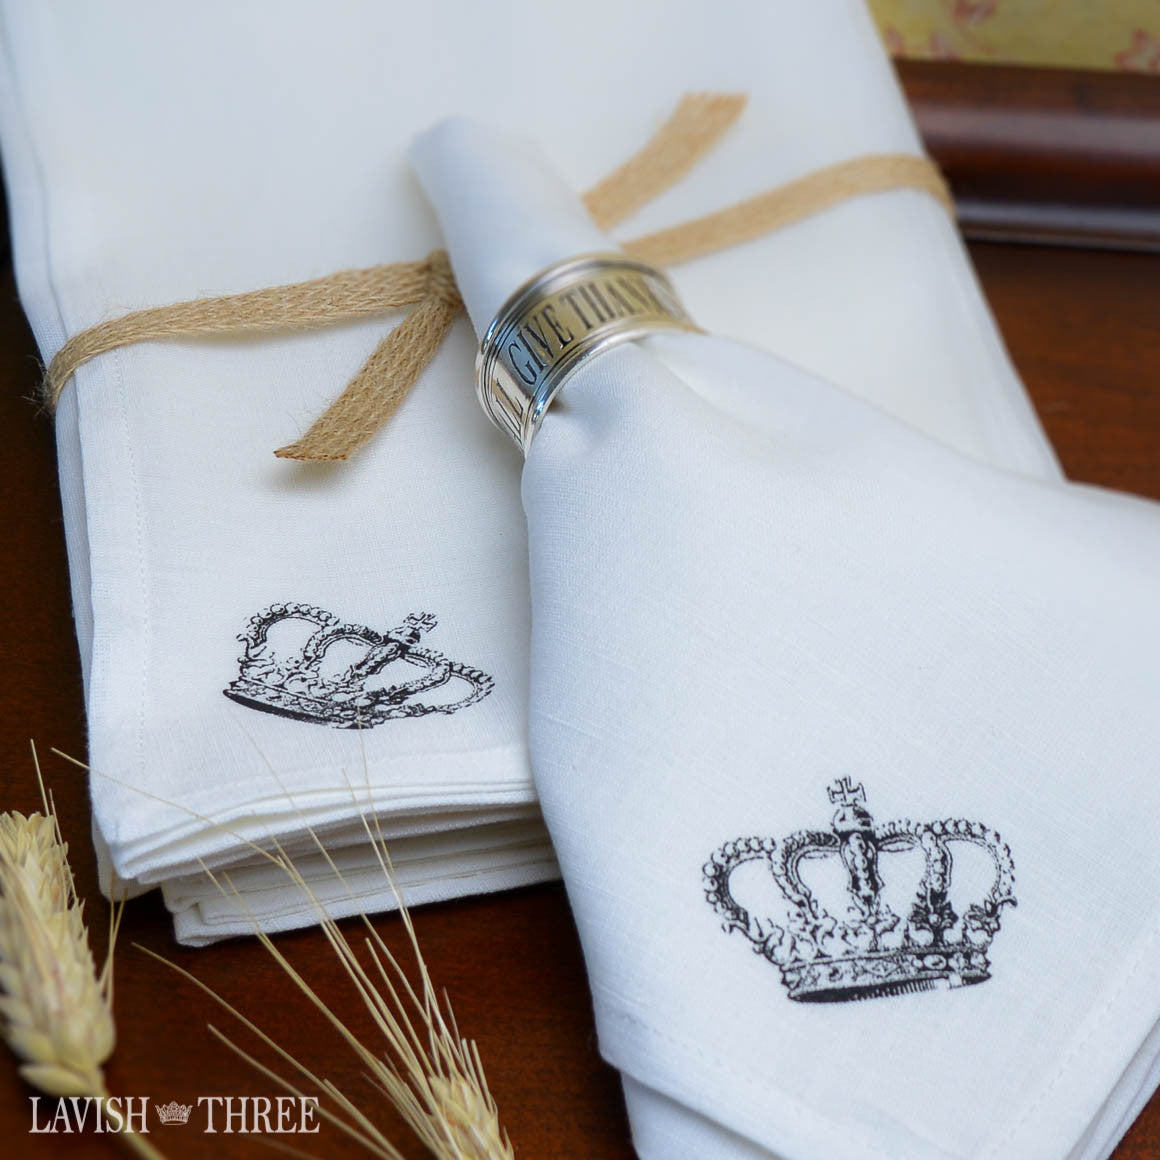 Give thanks in all things great and small silver stainless steel napkin rings